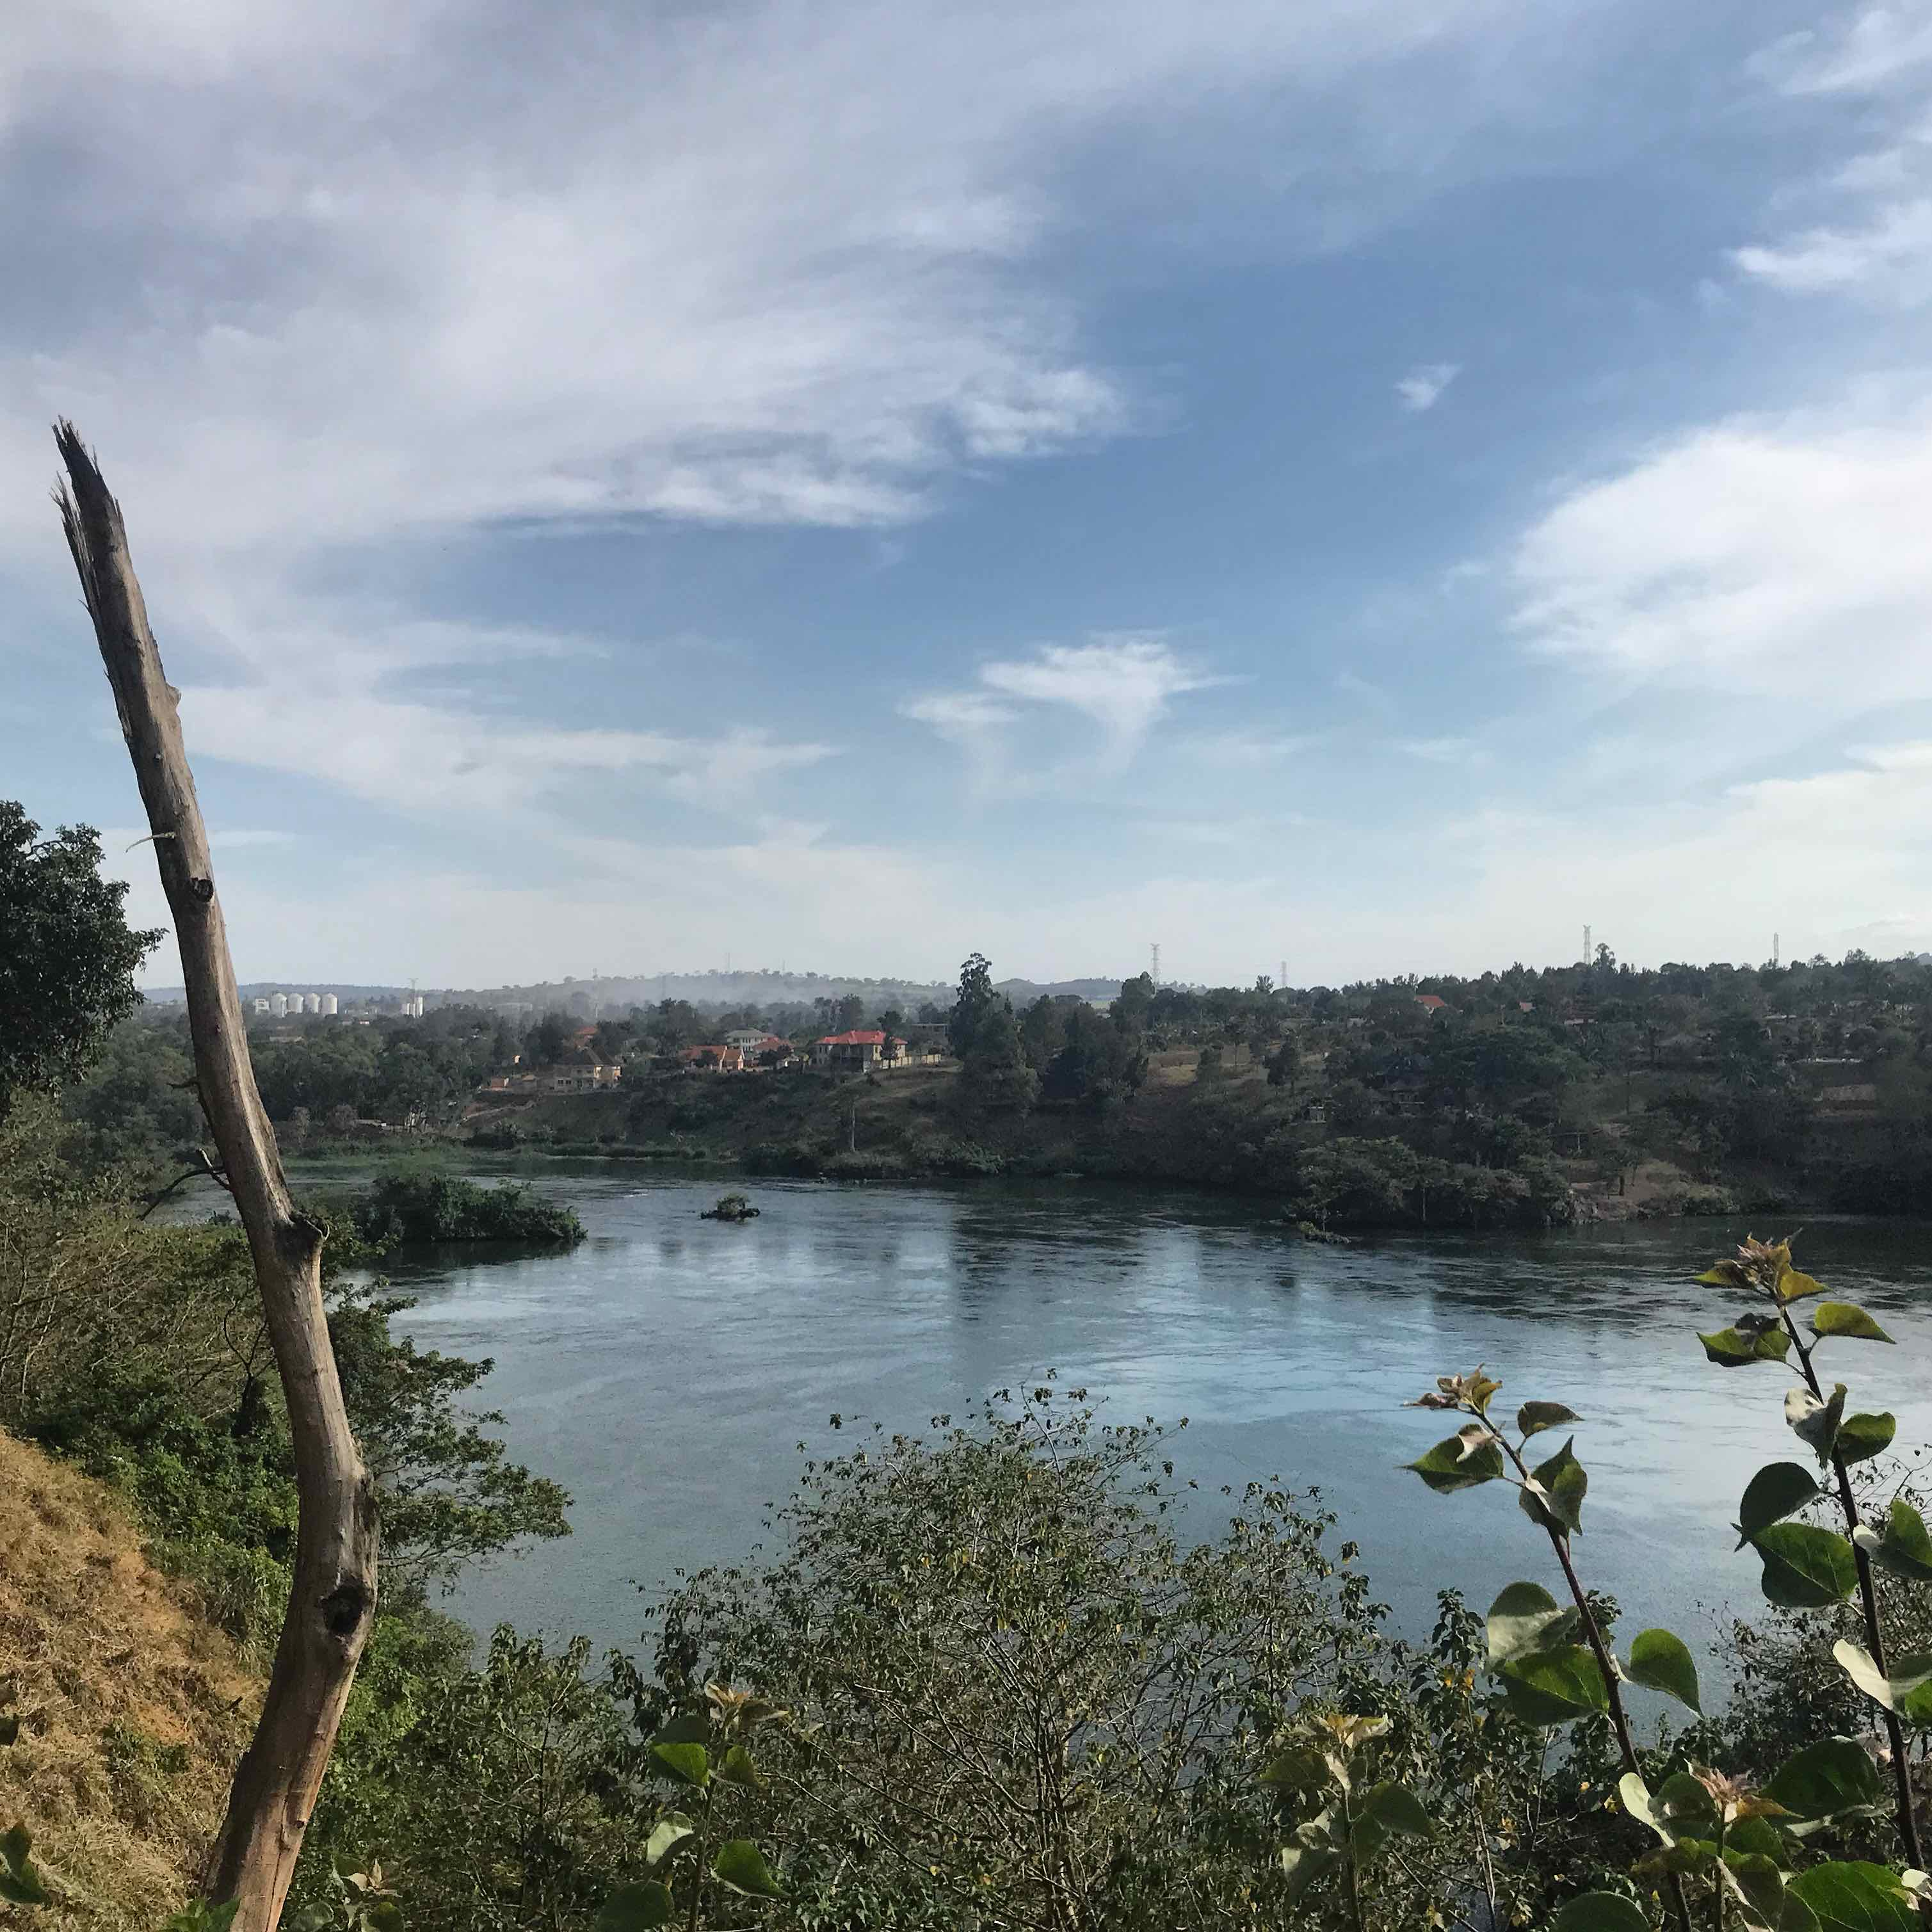 The Nile River near Jinja, Uganda